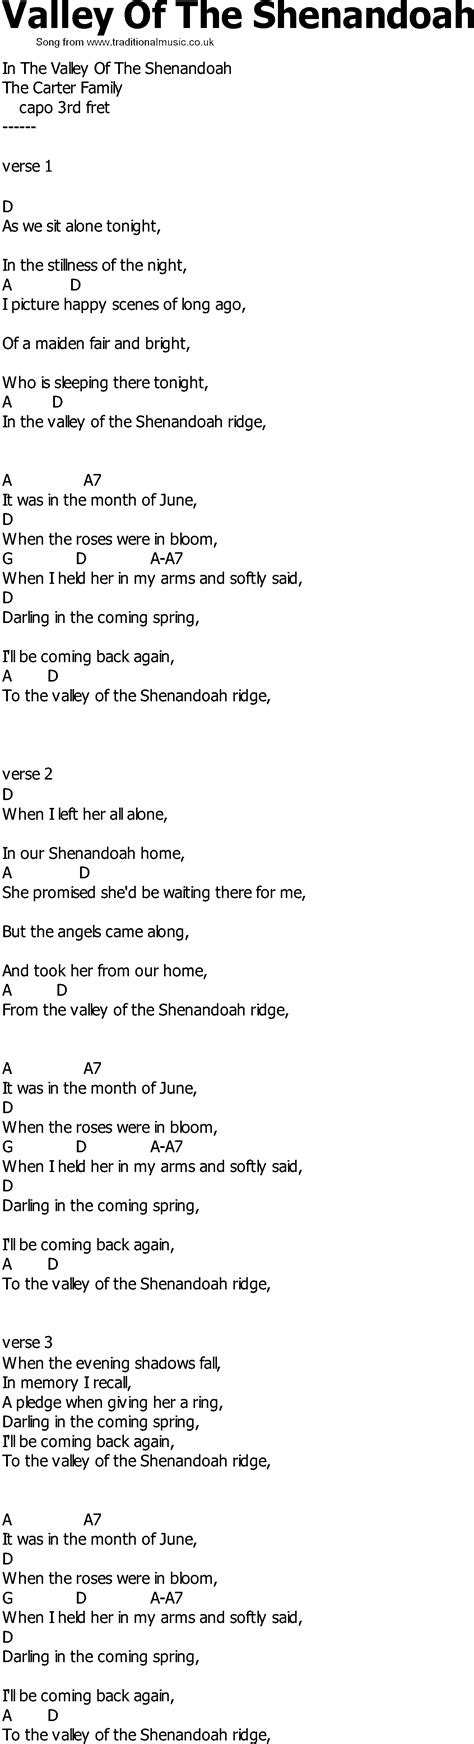 song of velly country song lyrics with chords valley of the shenandoah